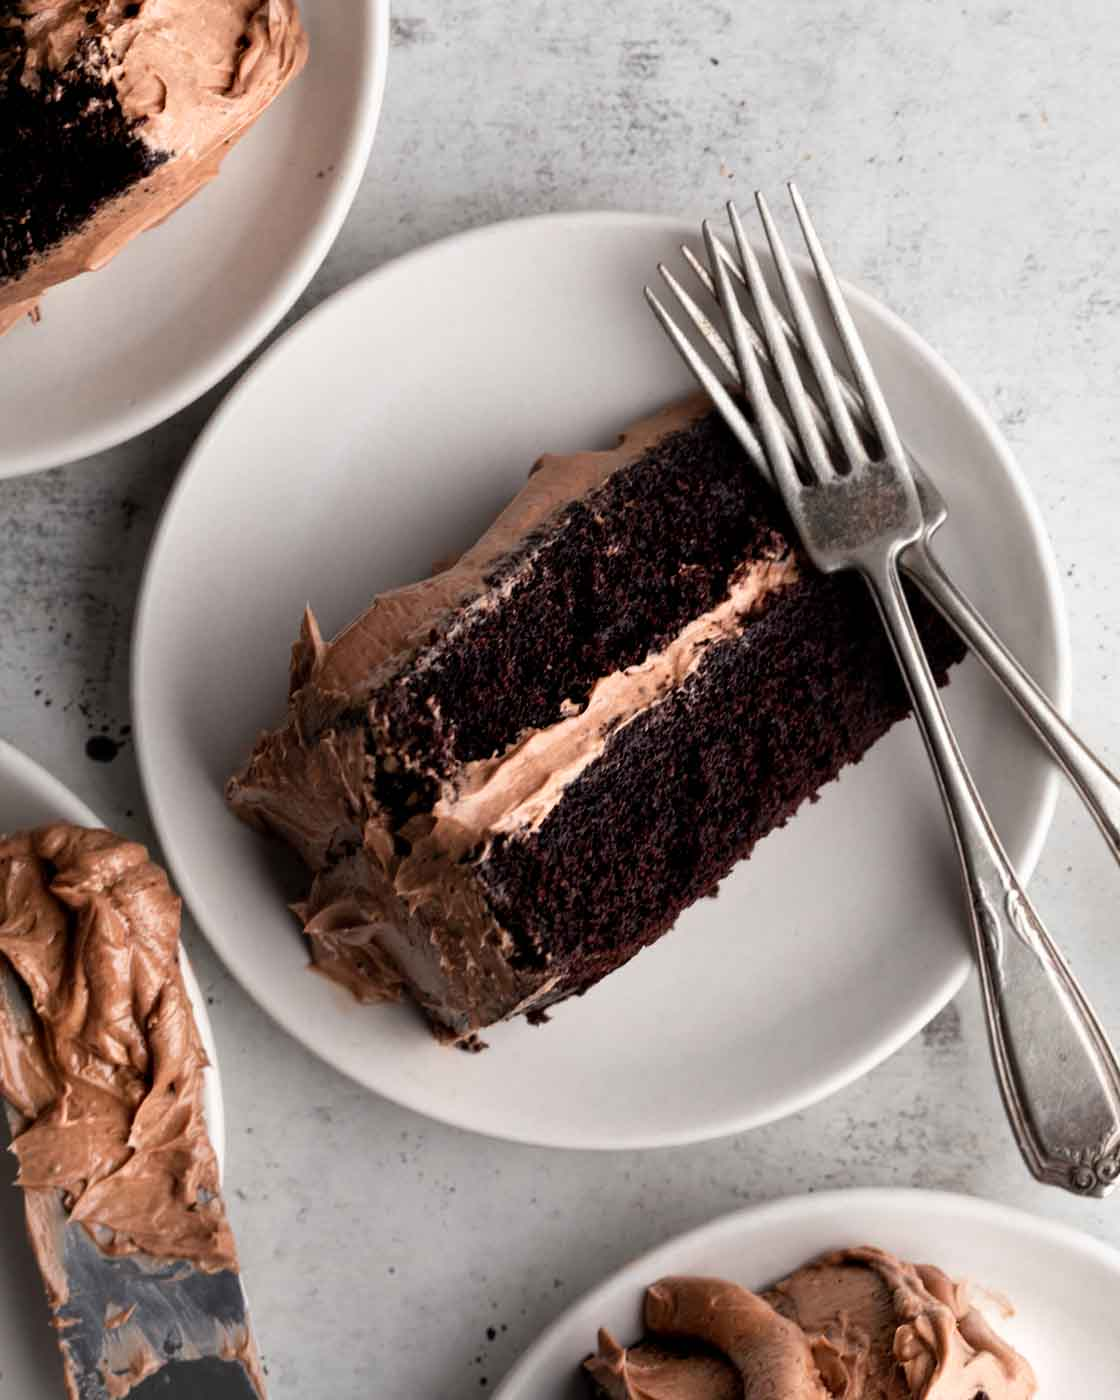 Vegan Gluten-Free Chocolate Cake Recipe